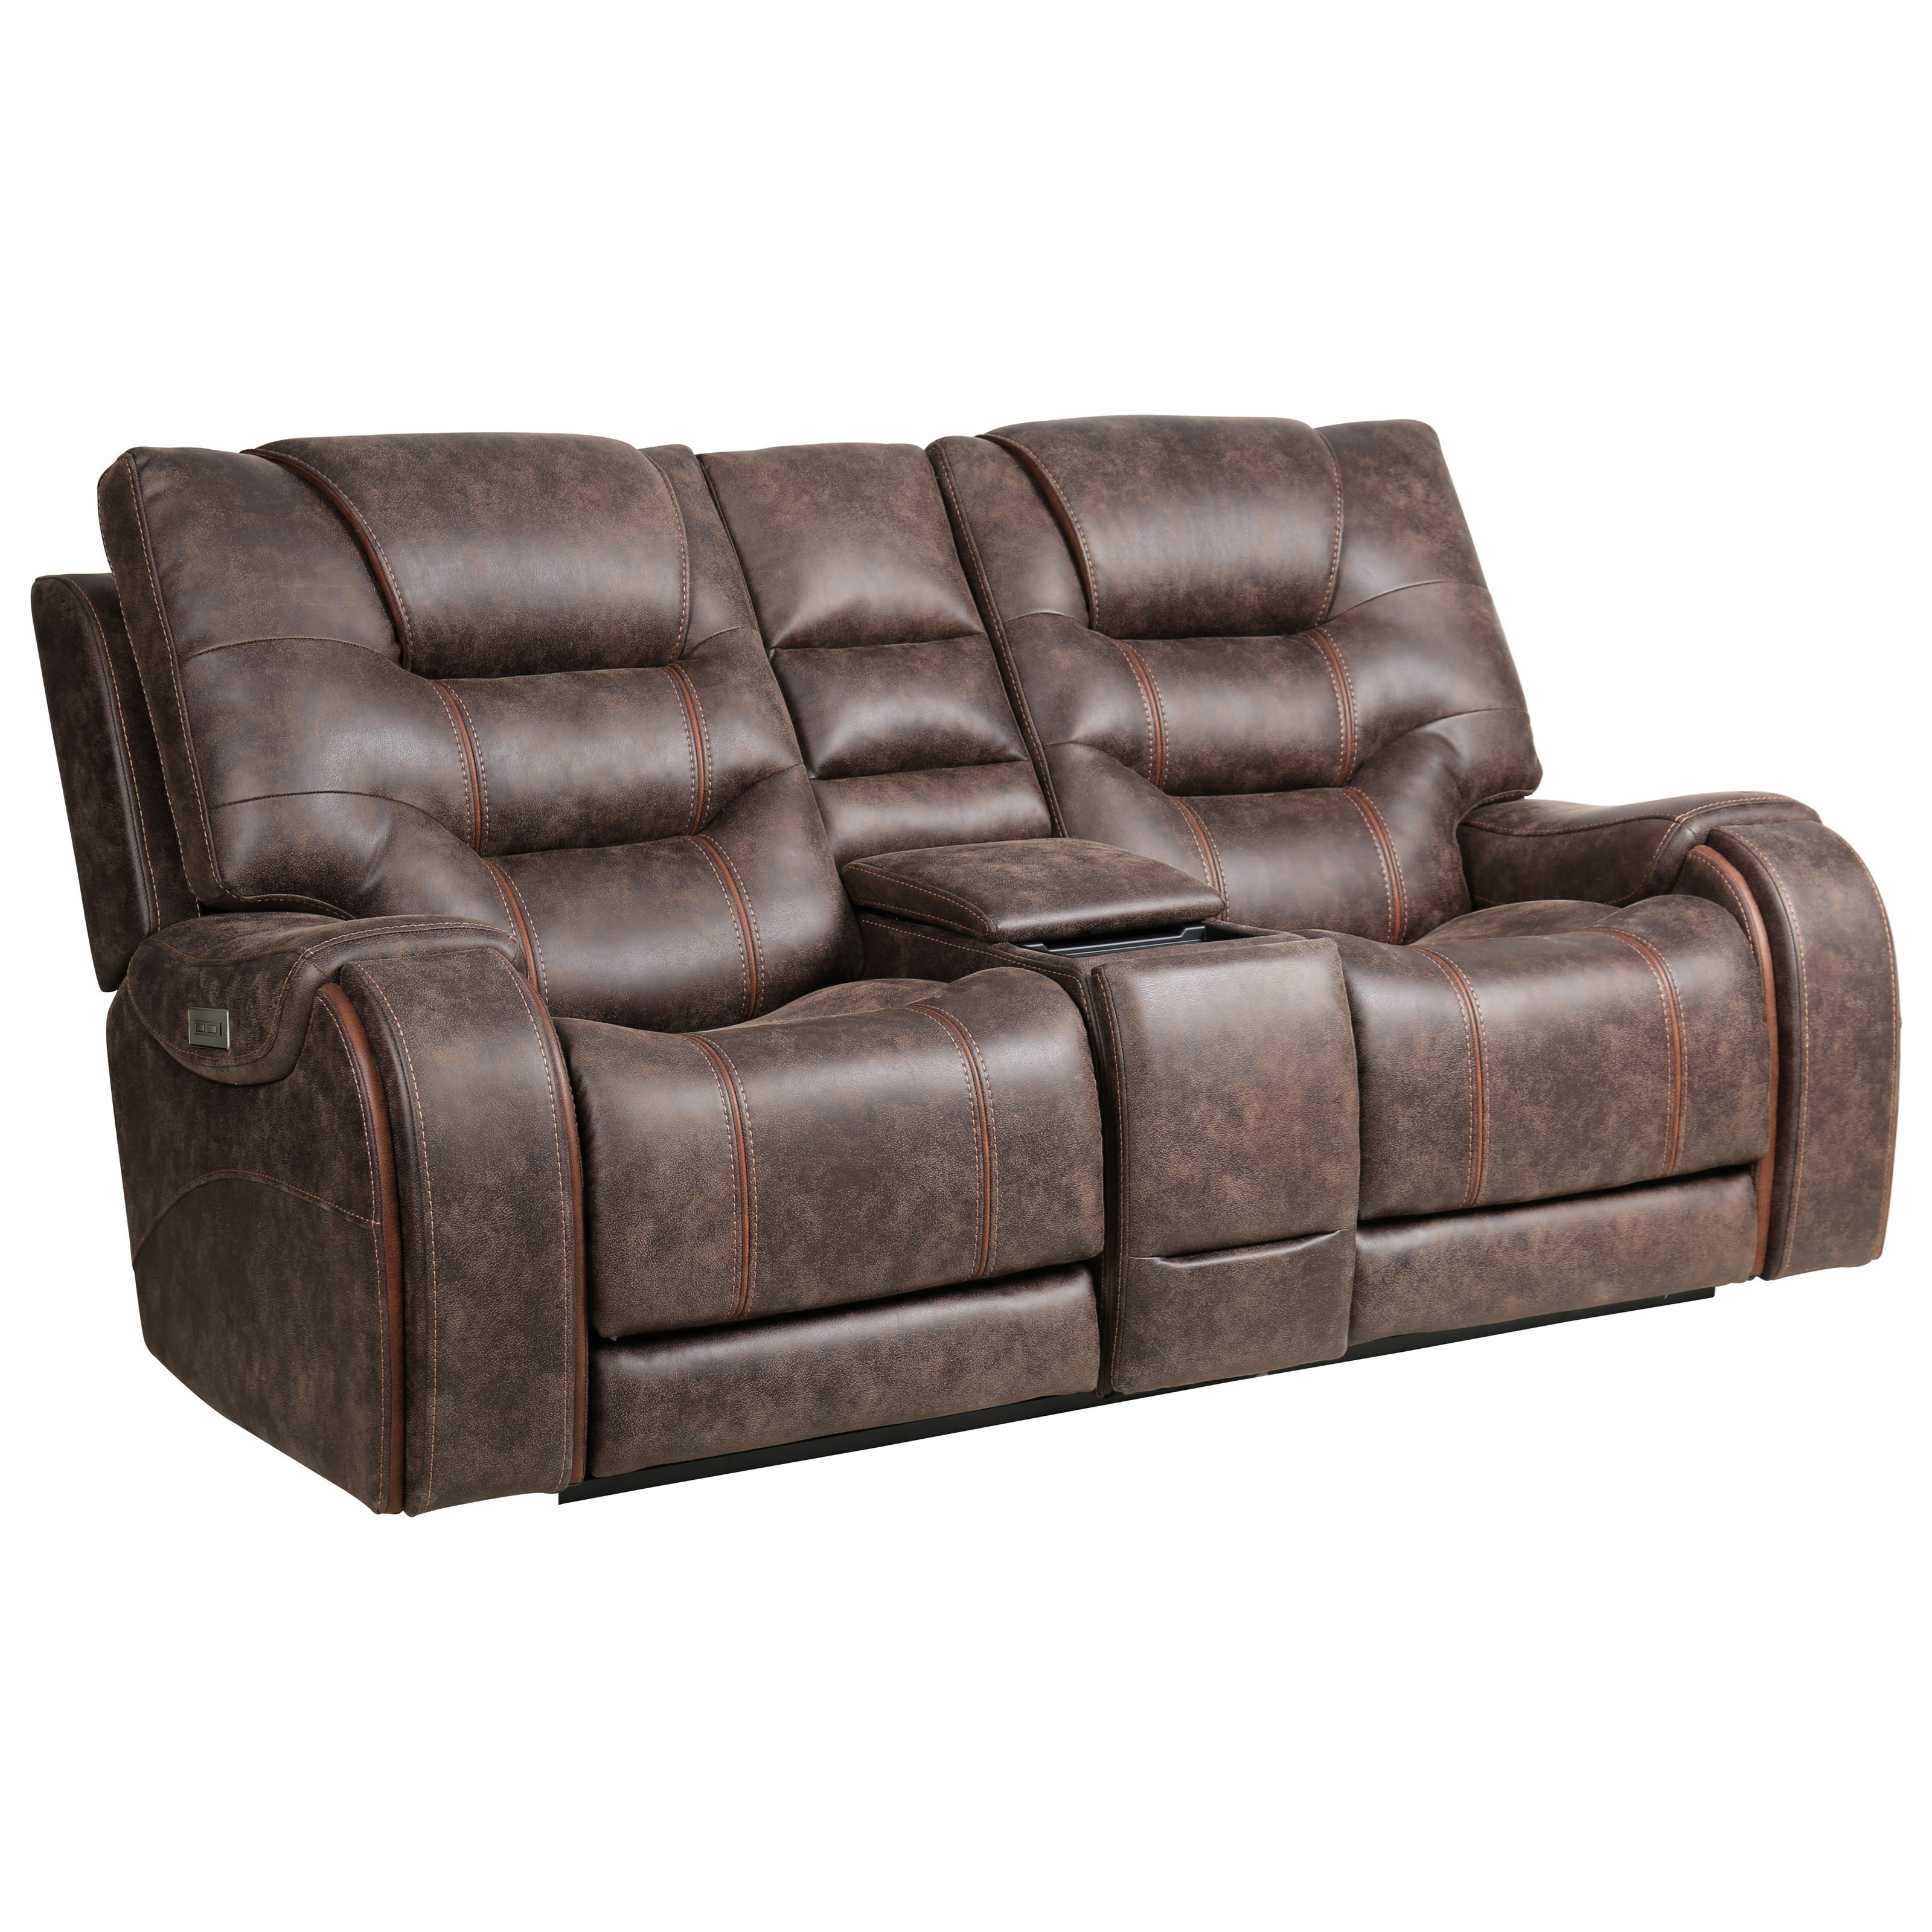 Warehouse M Power Reclining Console Love w/ Pwr Headrest by Moto Motion at Pilgrim Furniture City